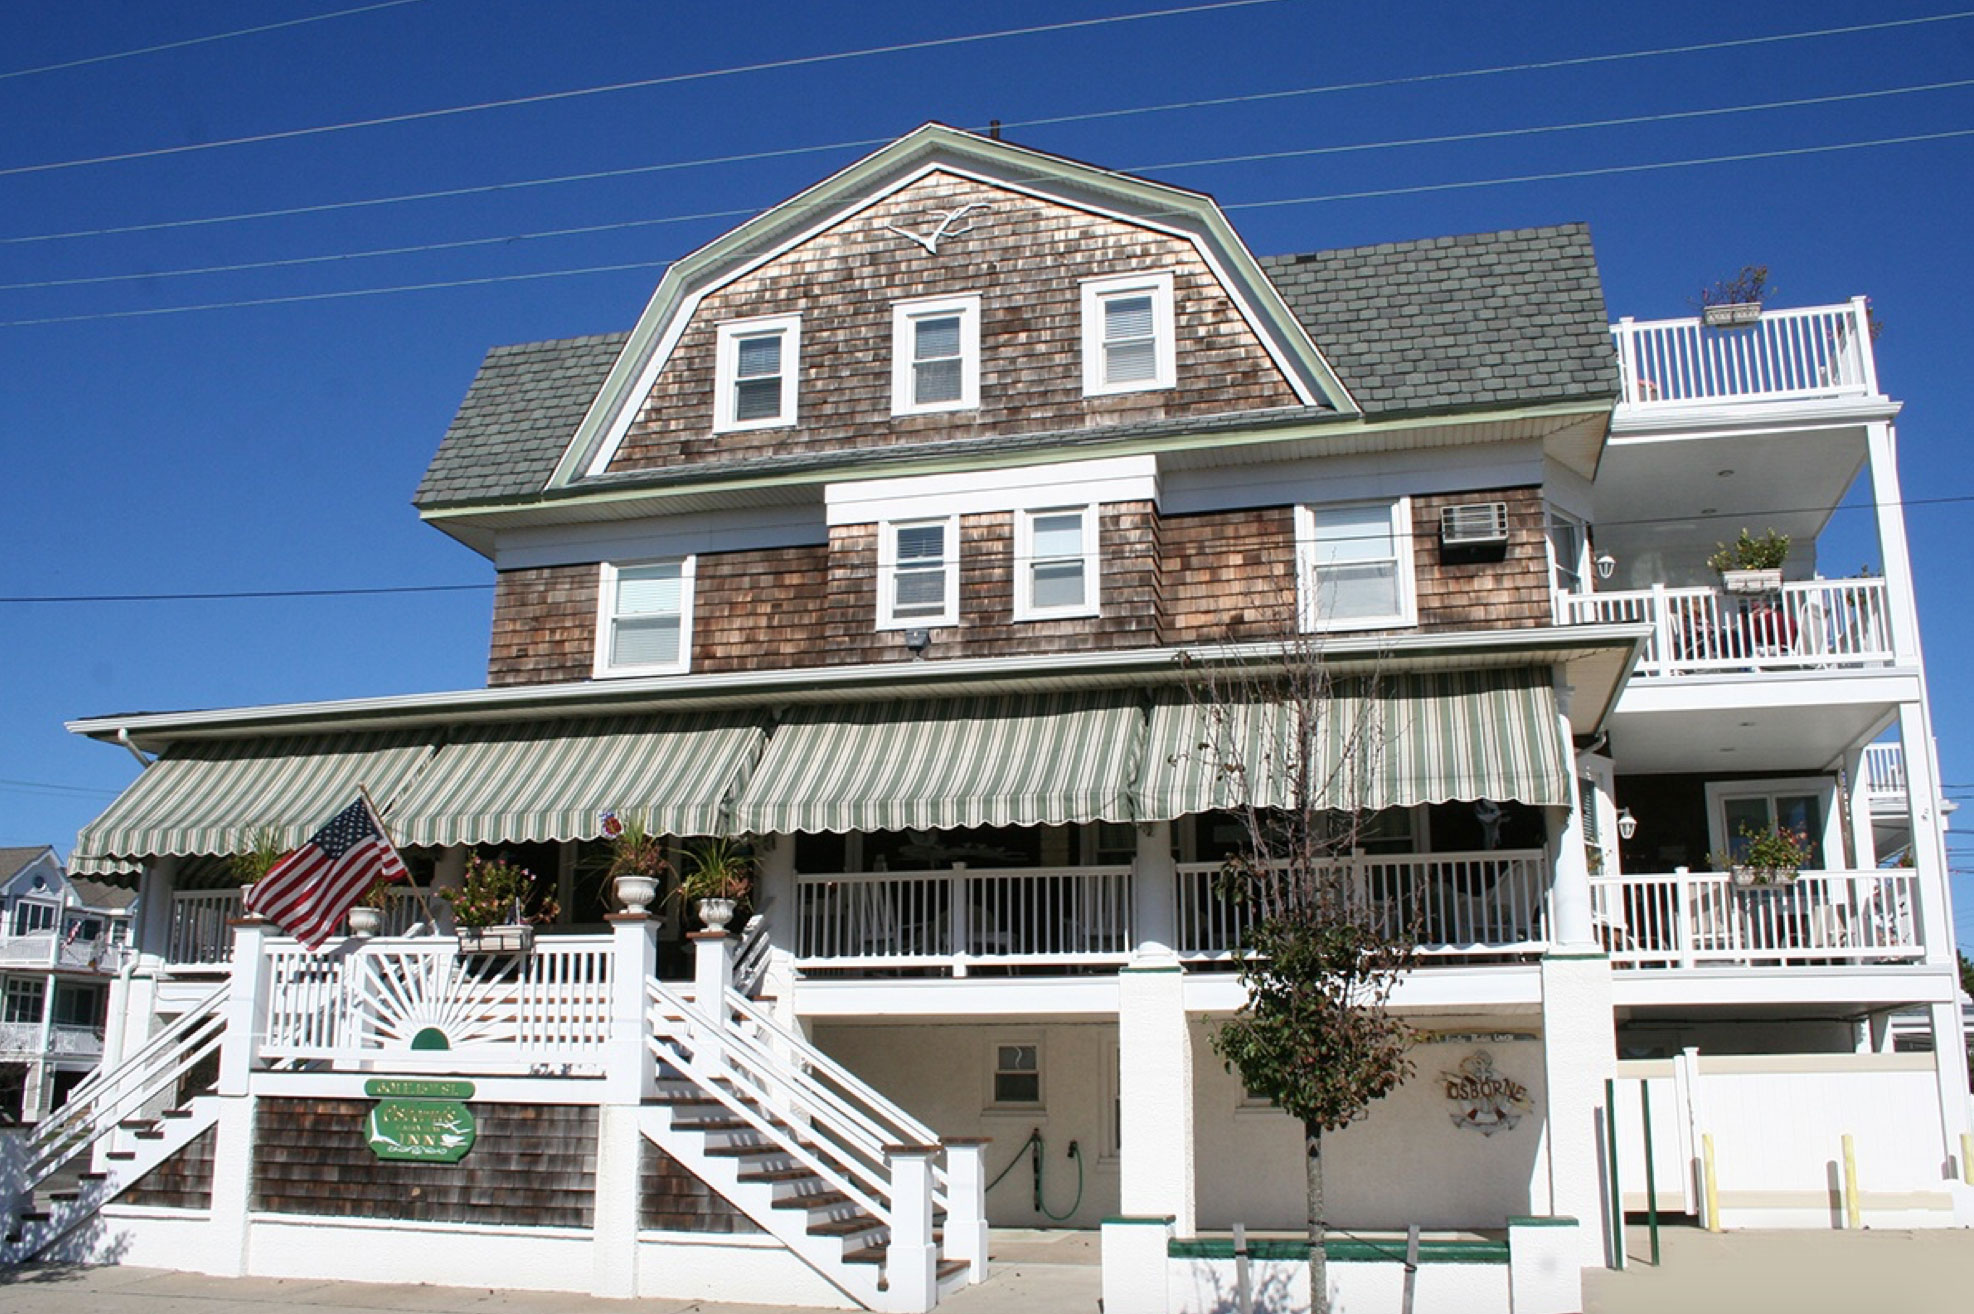 Best Bed And Breakfast Places In Maryland